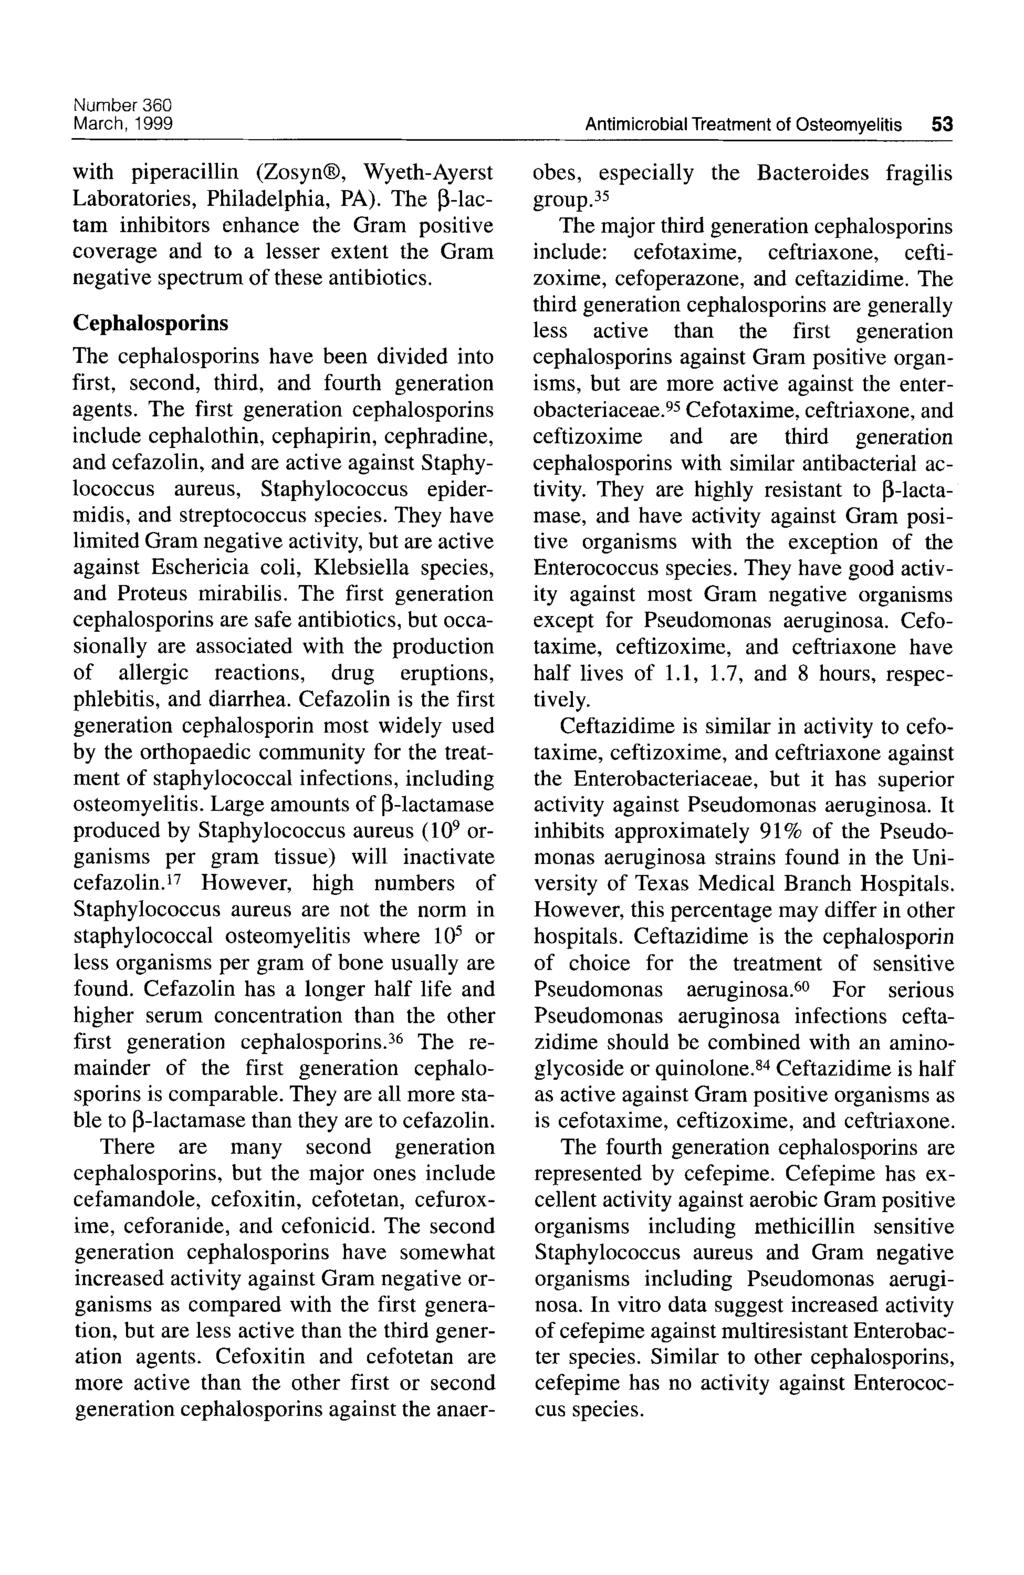 Number 360 March, 1999 Antimicrobial Treatment of Osteomyelitis 53 with piperacillin (Zosyna), Wyeth-Ayerst Laboratories, Philadelphia, PA).